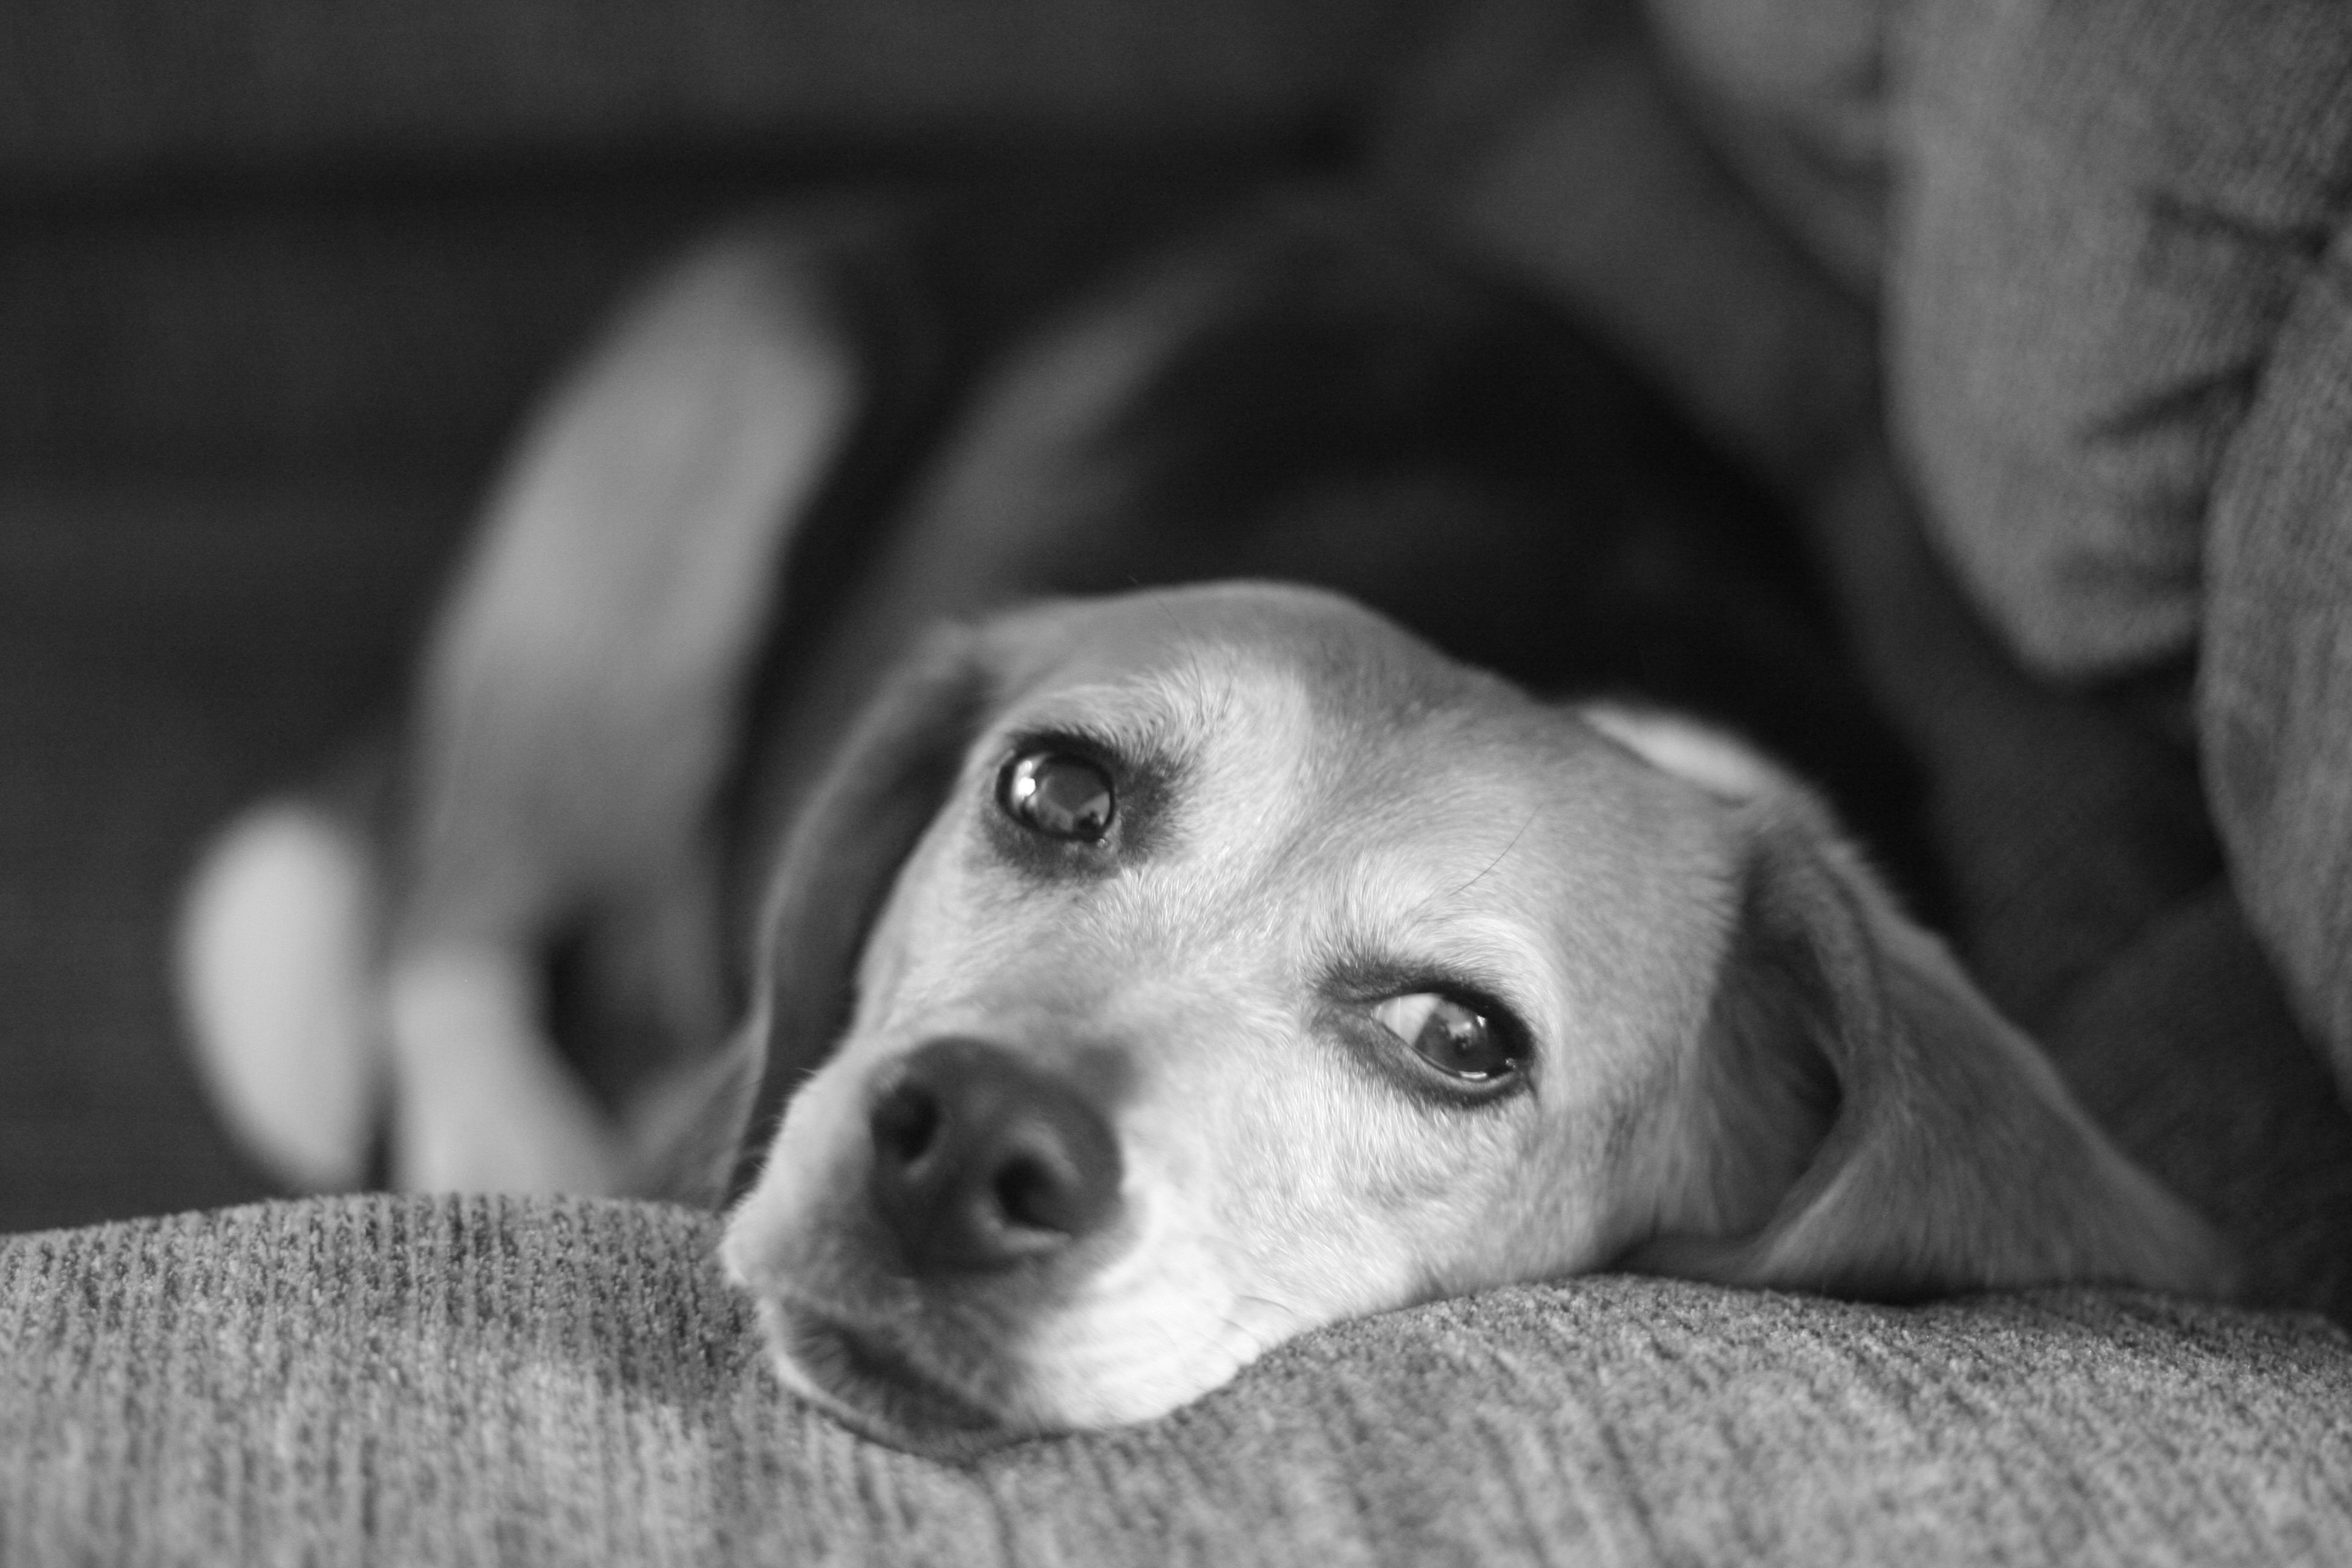 Can Dogs See In Color Or Black And White